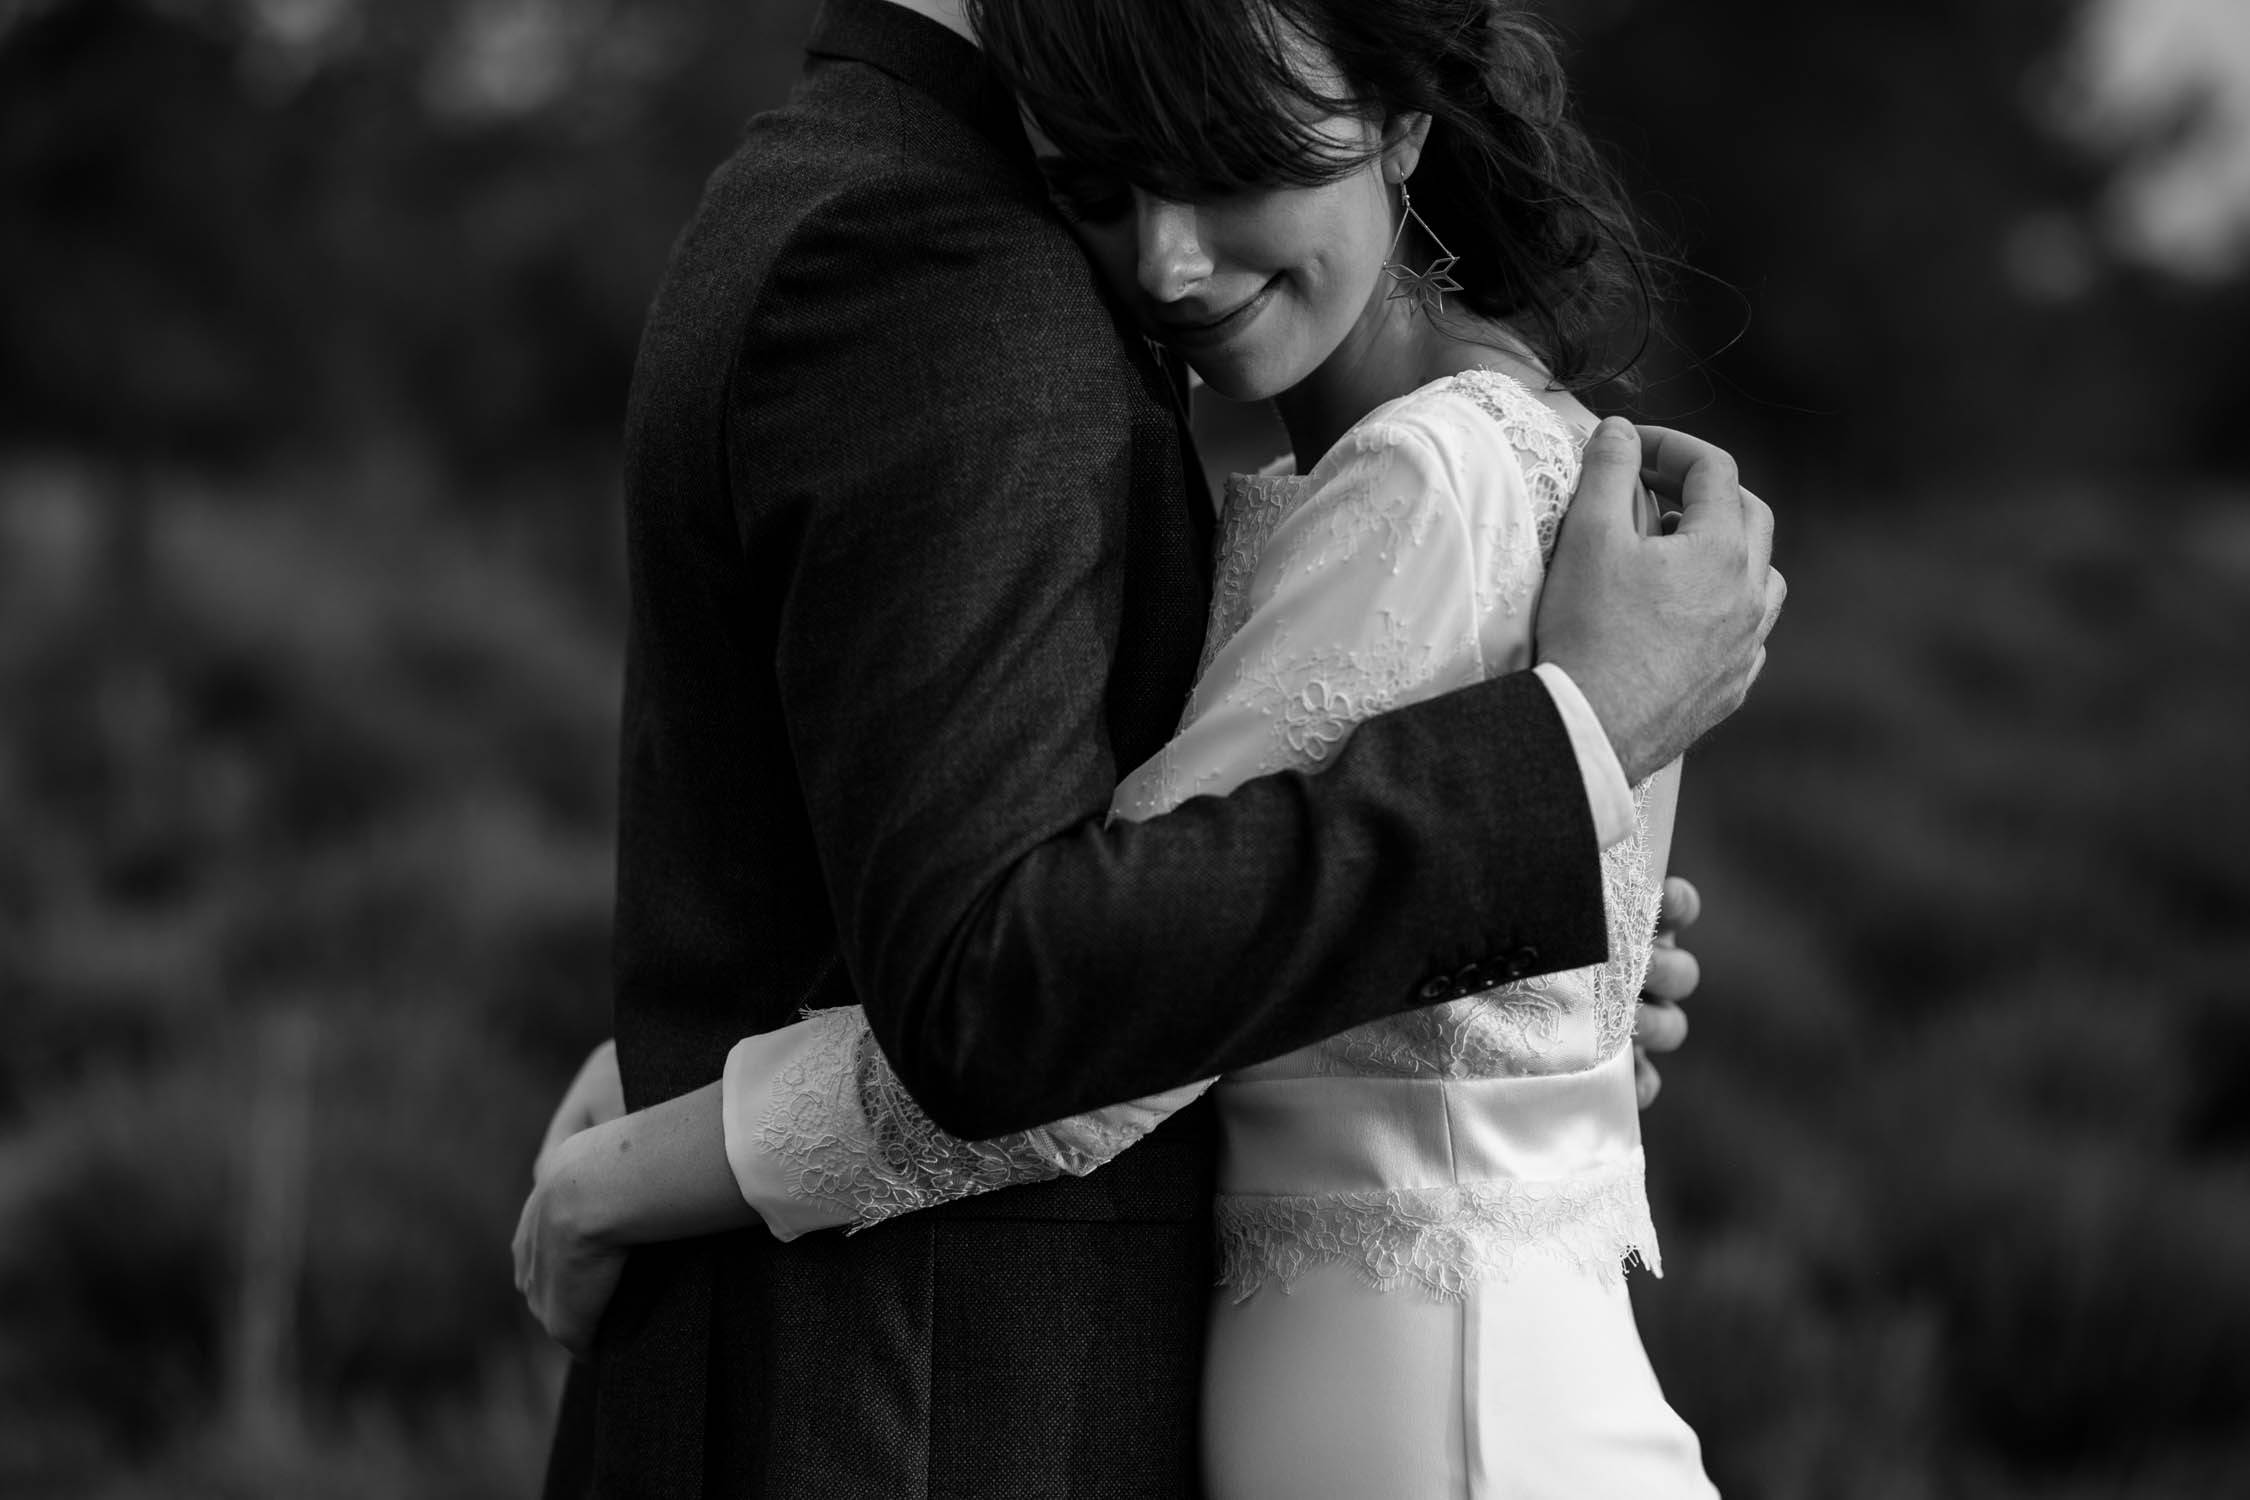 Black and white photojournalistic photo of bride with natural bridal upstyle putting her head on groom's shoulder